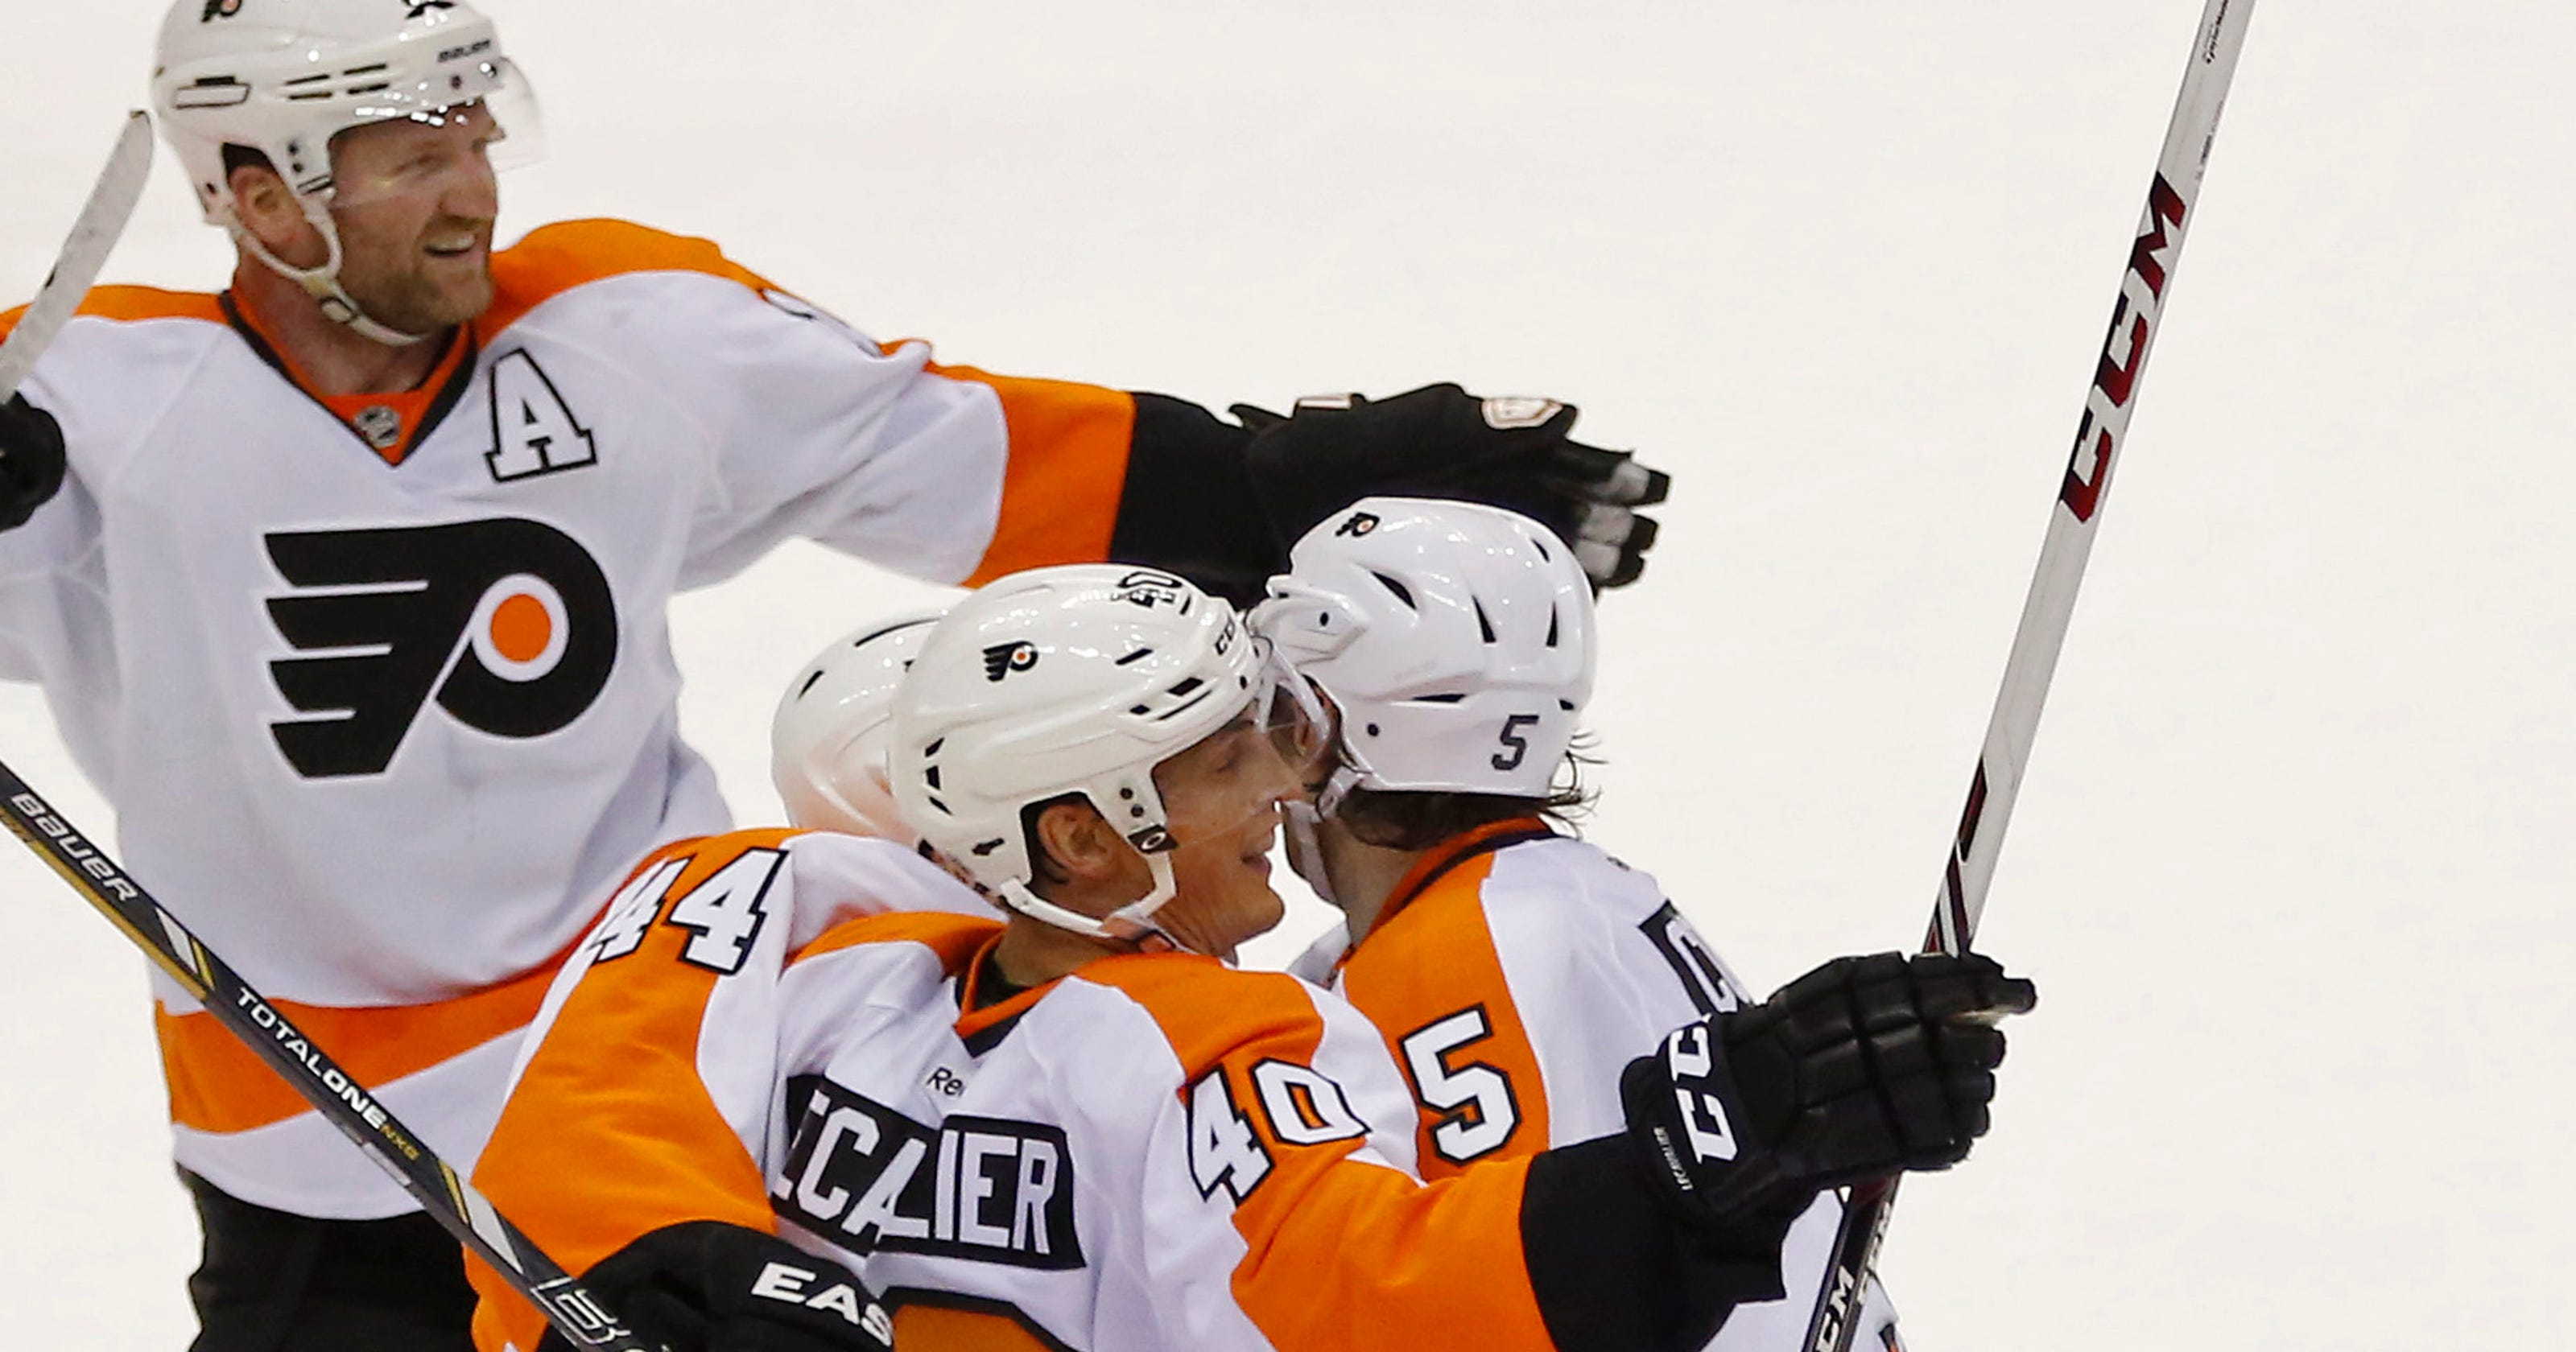 41ed0106b99 Flyers rally for 5-4 OT win against Capitals